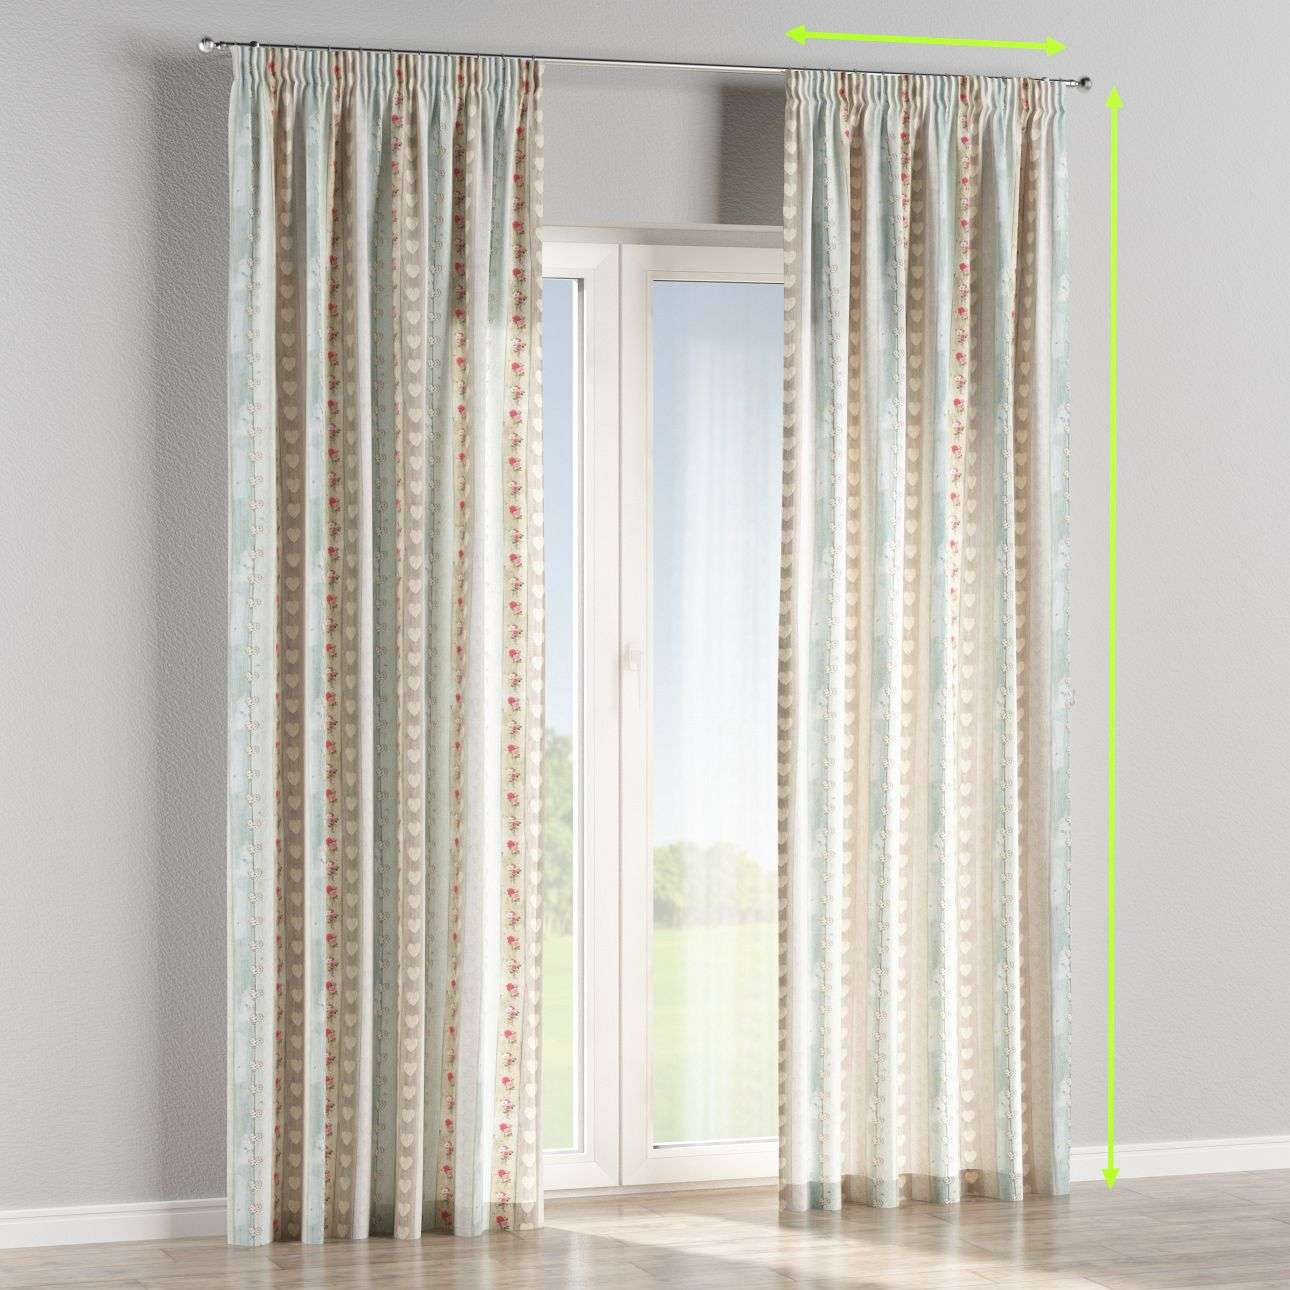 Pencil pleat lined curtains in collection Ashley, fabric: 140-20